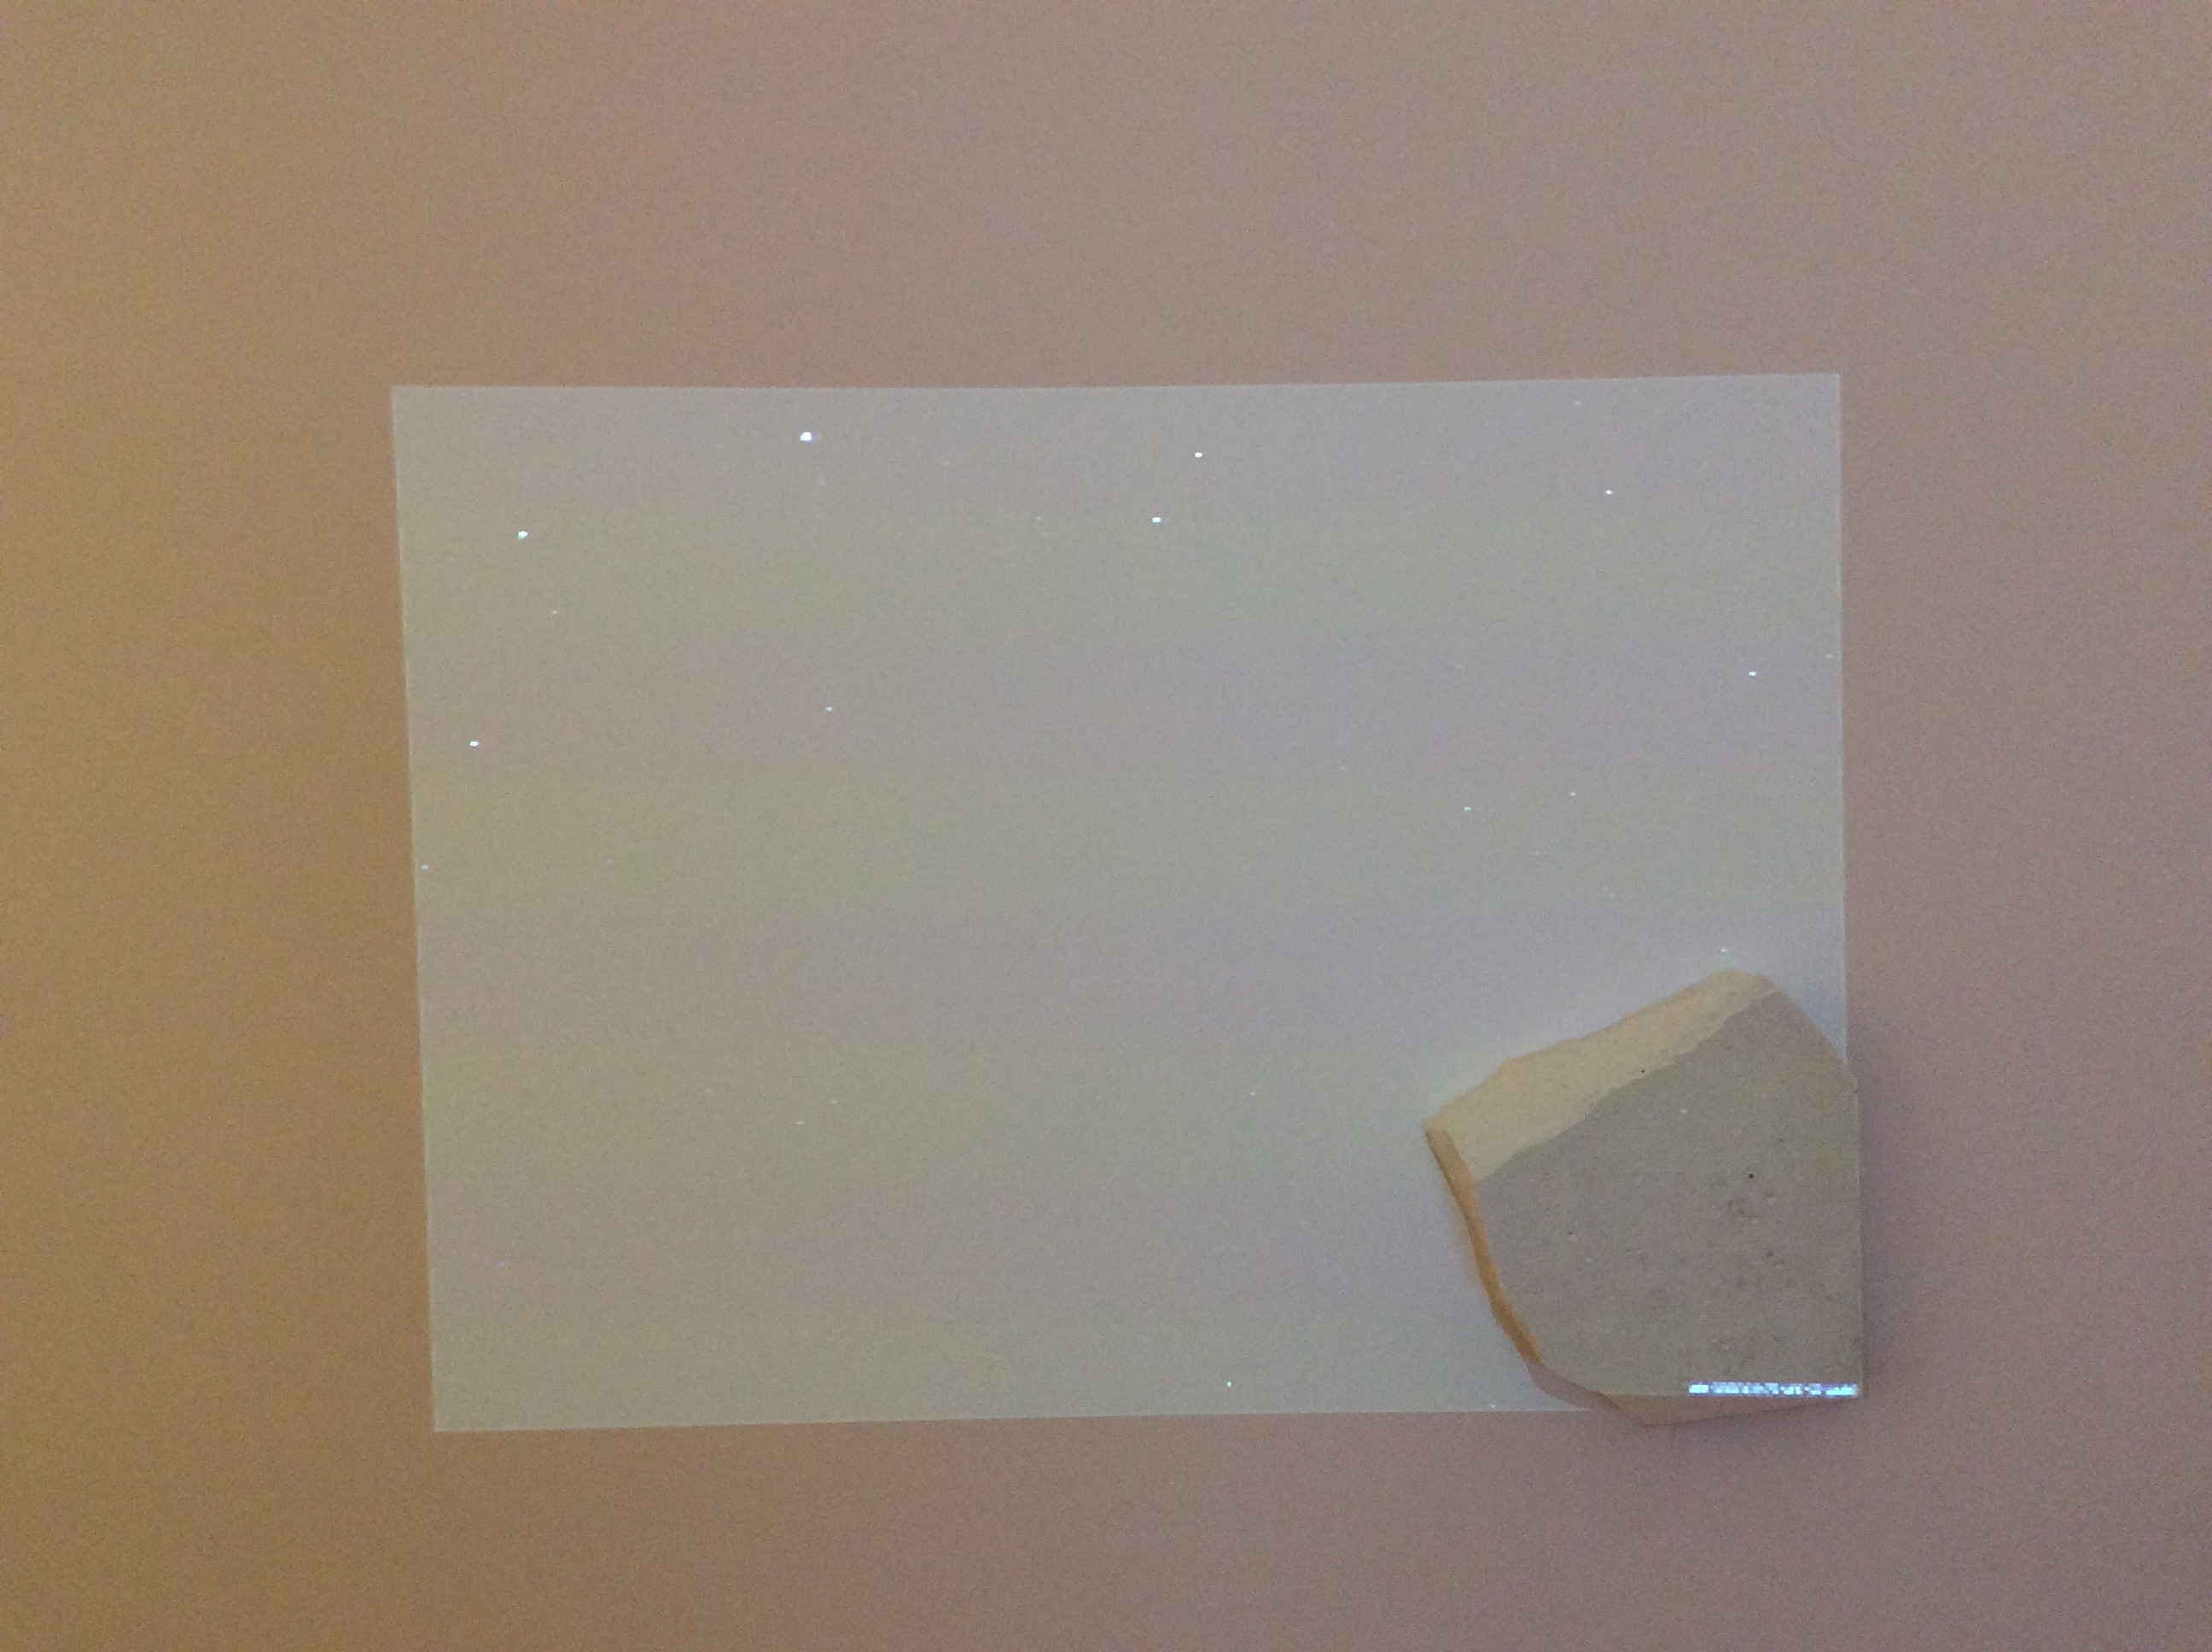 image-3-susan-goethel-campbell-chasing-venus-1-of-5-2016-3-channel-video-installation-plaster-fregment-1920-x-1080-in